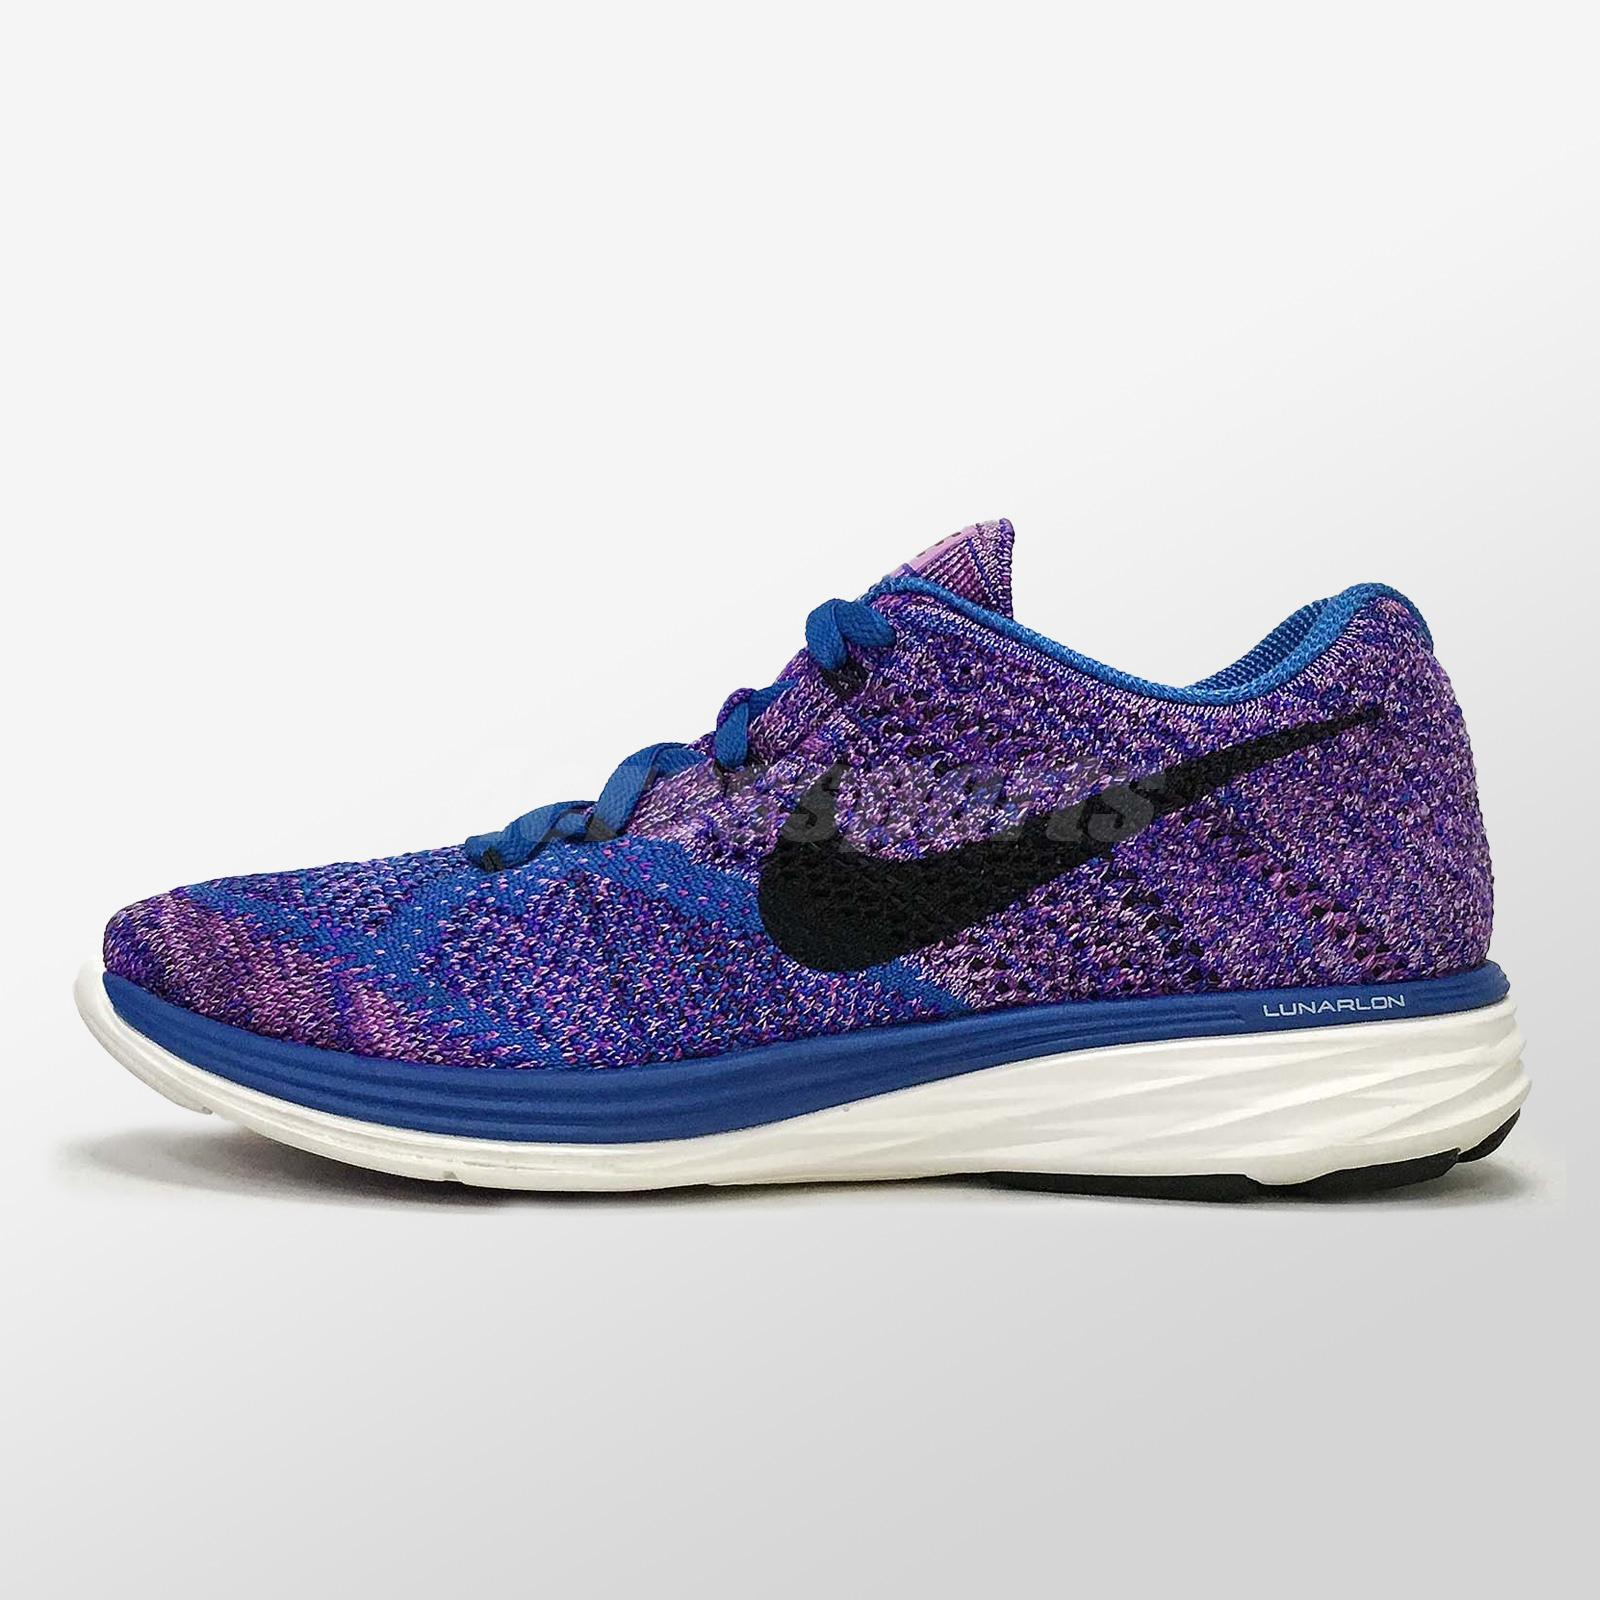 save off 9a397 96084 Details about Nike Wmns Flyknit Lunar3 Pre-owned Game Royal Women Running  Shoe 698182-405